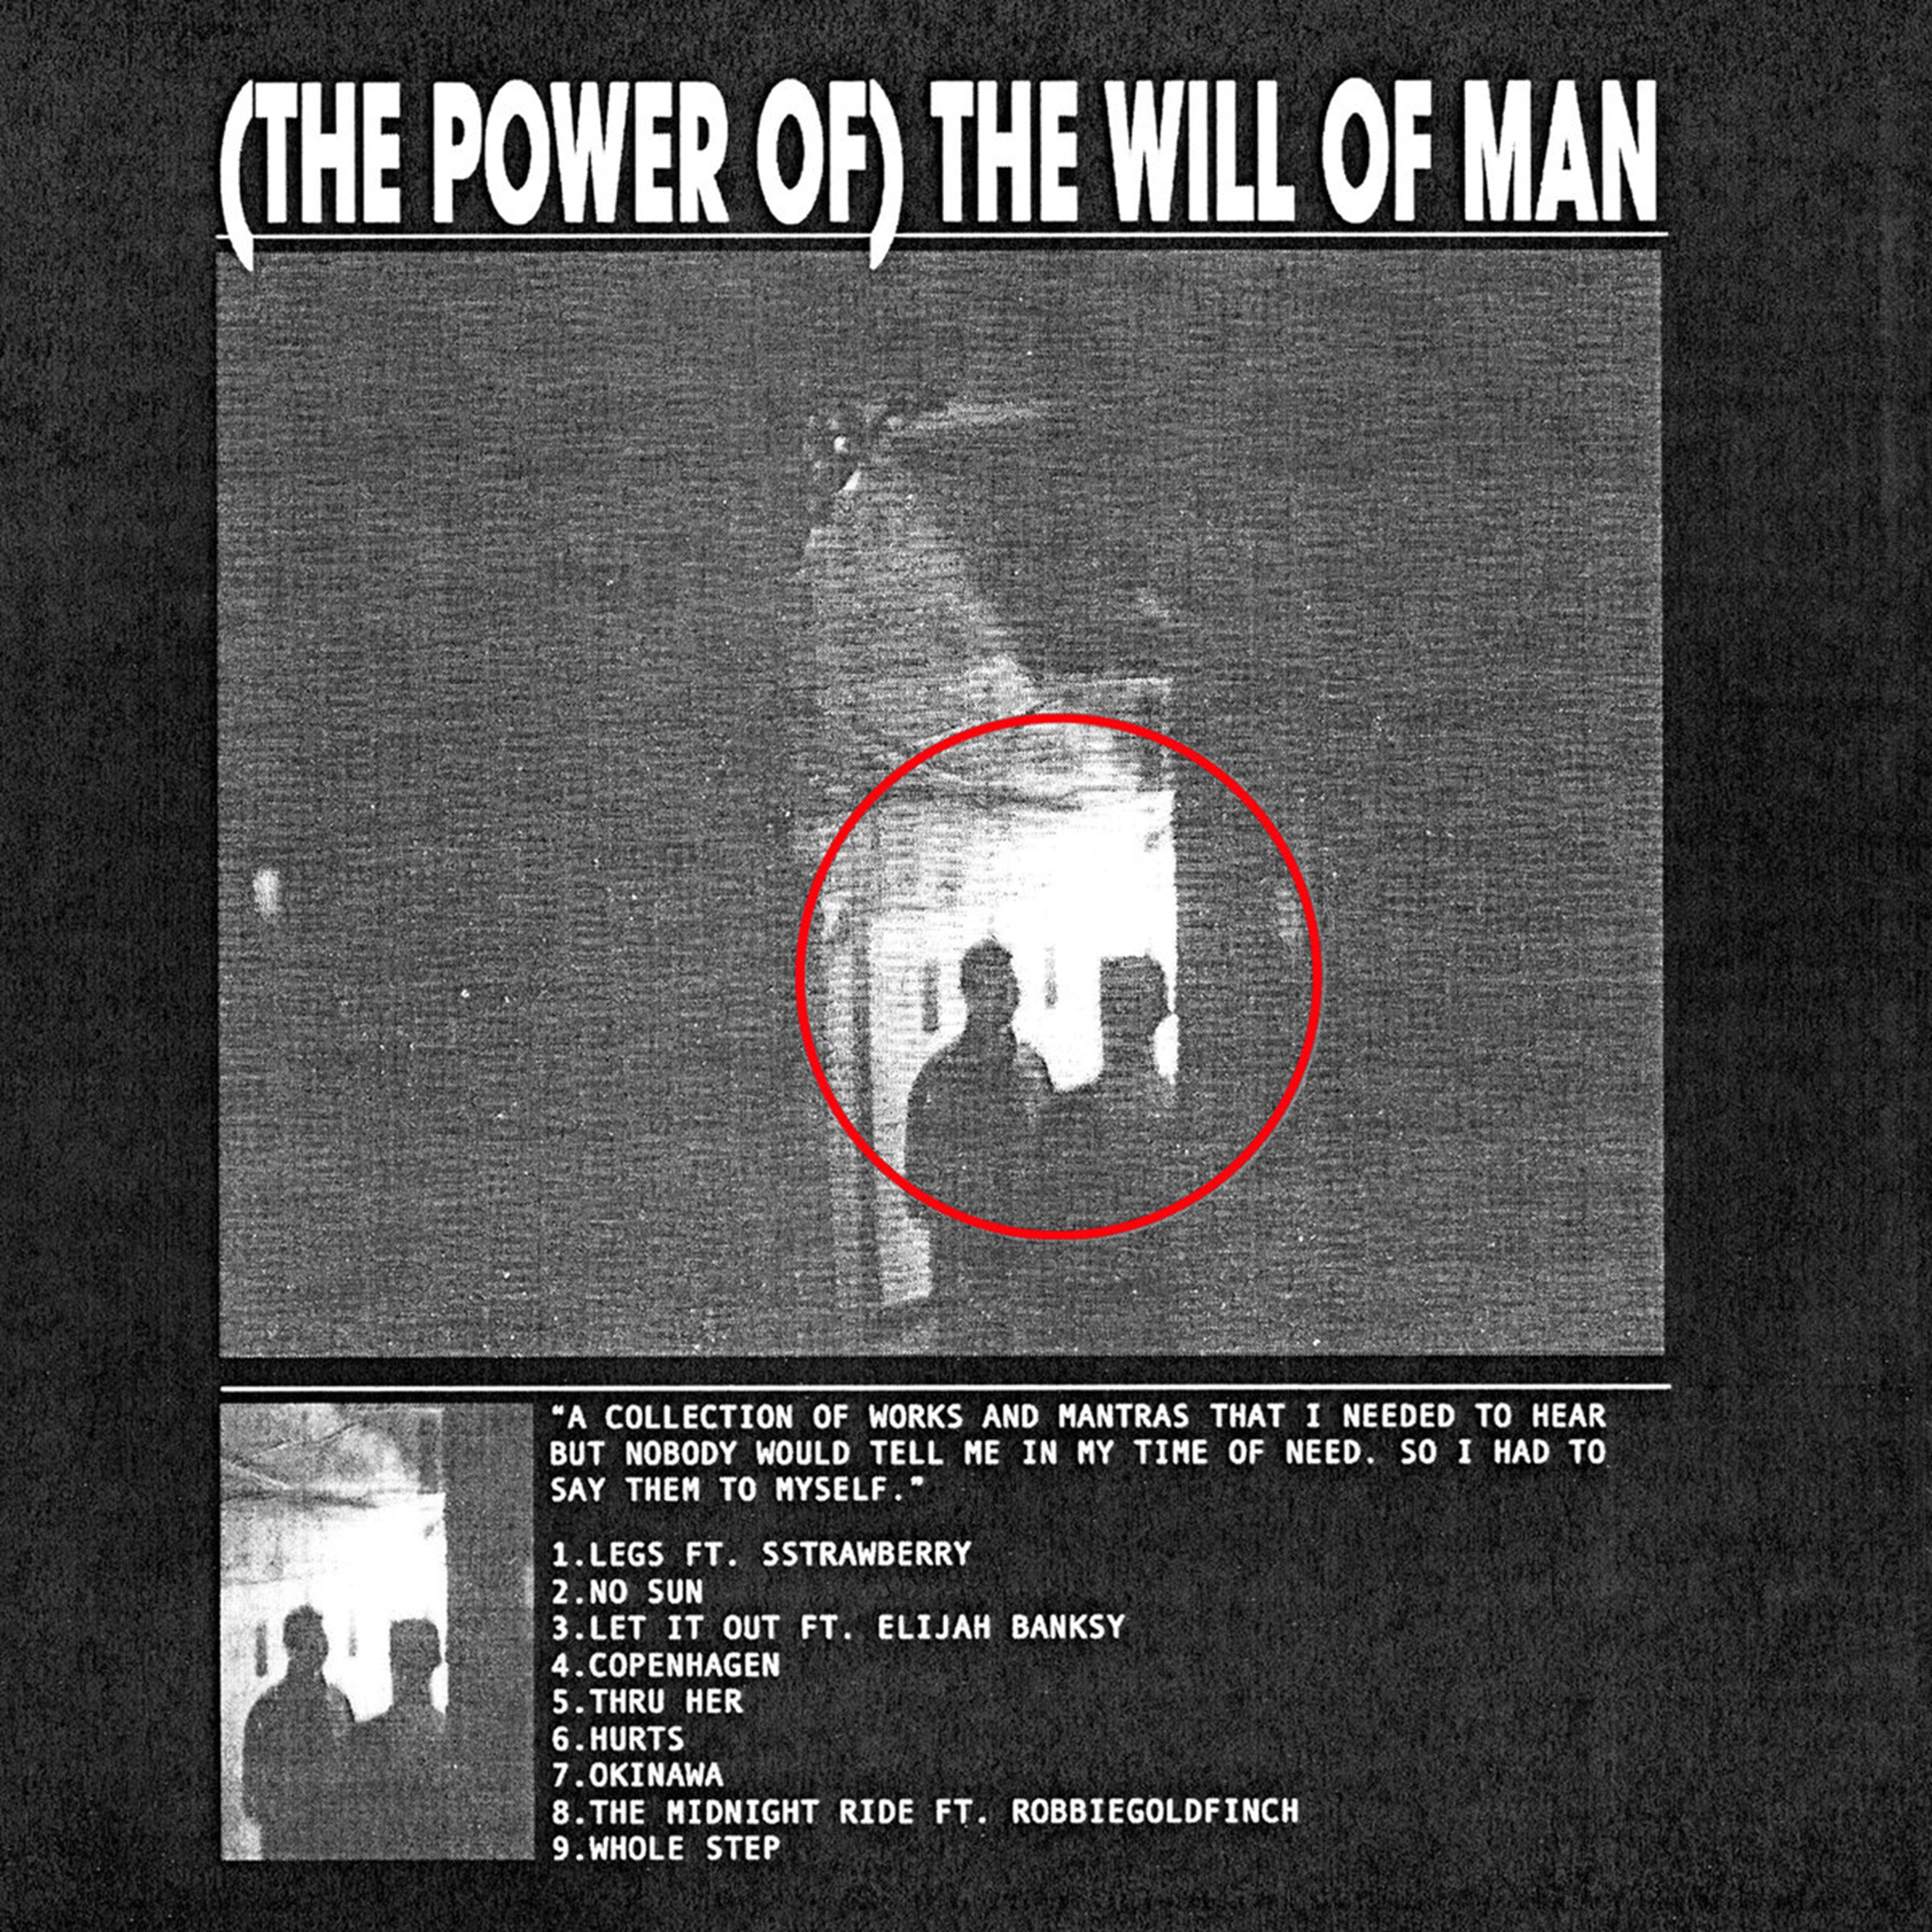 (The Power Of) the Will of Man - 1